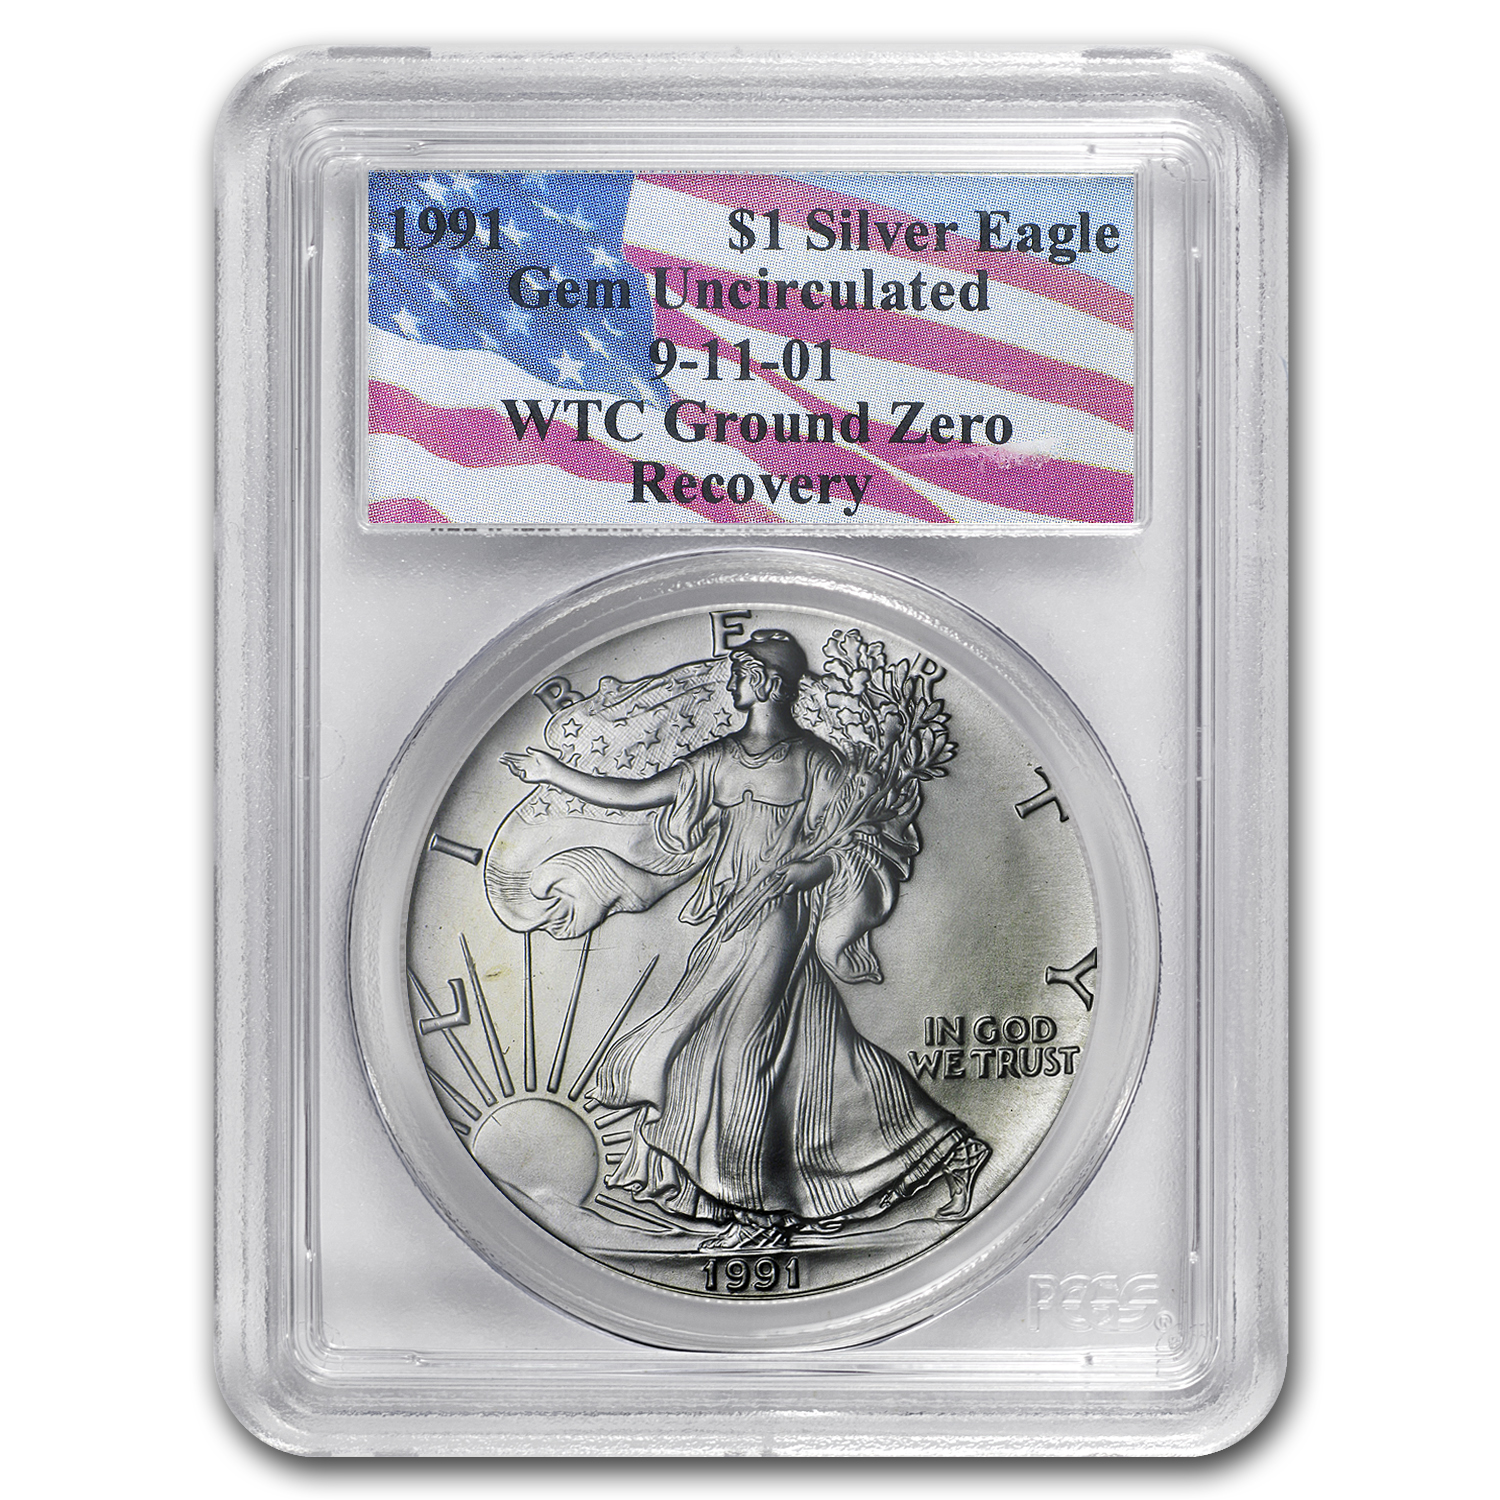 1991 Silver American Eagle Gem Unc PCGS (World Trade Center)